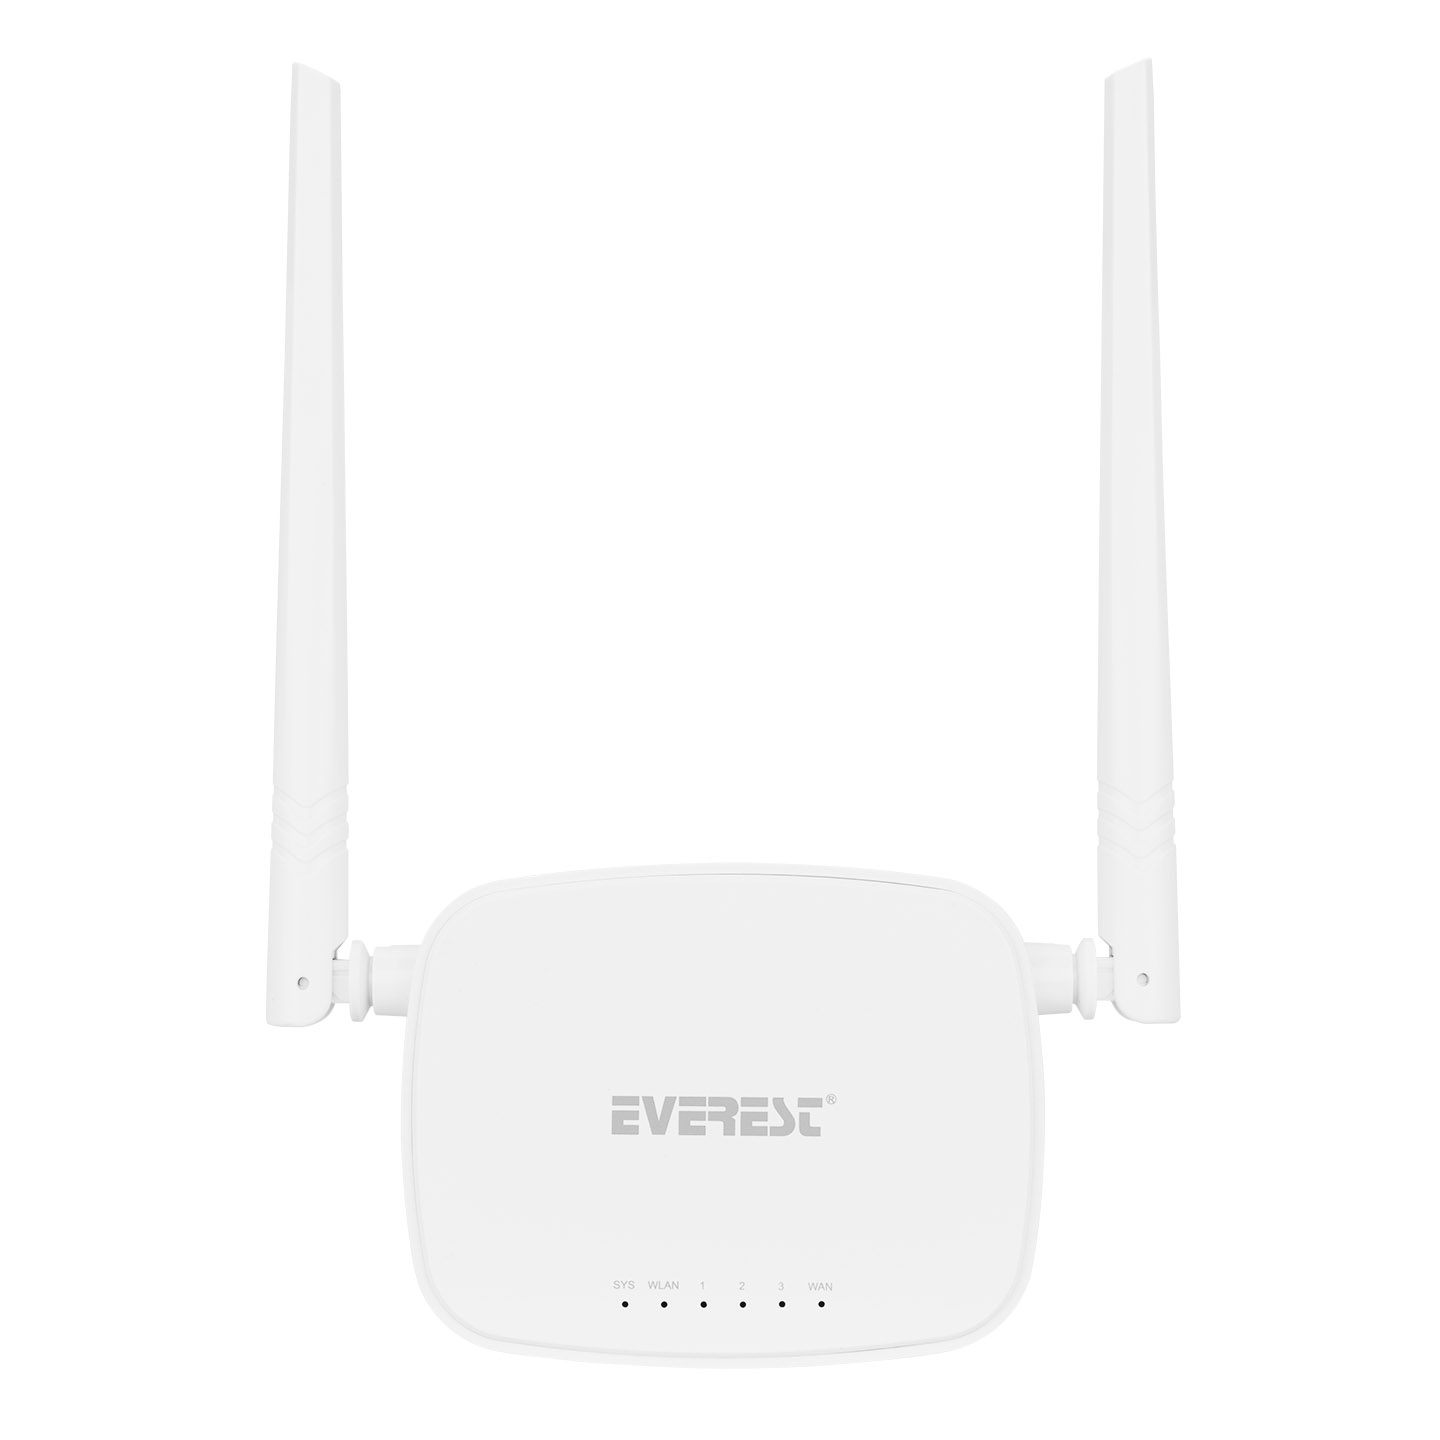 Everest EWR-301 Wireless -N WPS + WISP+WDS 300 Mbps Repeater+Access Point+Bridge Wireless Router